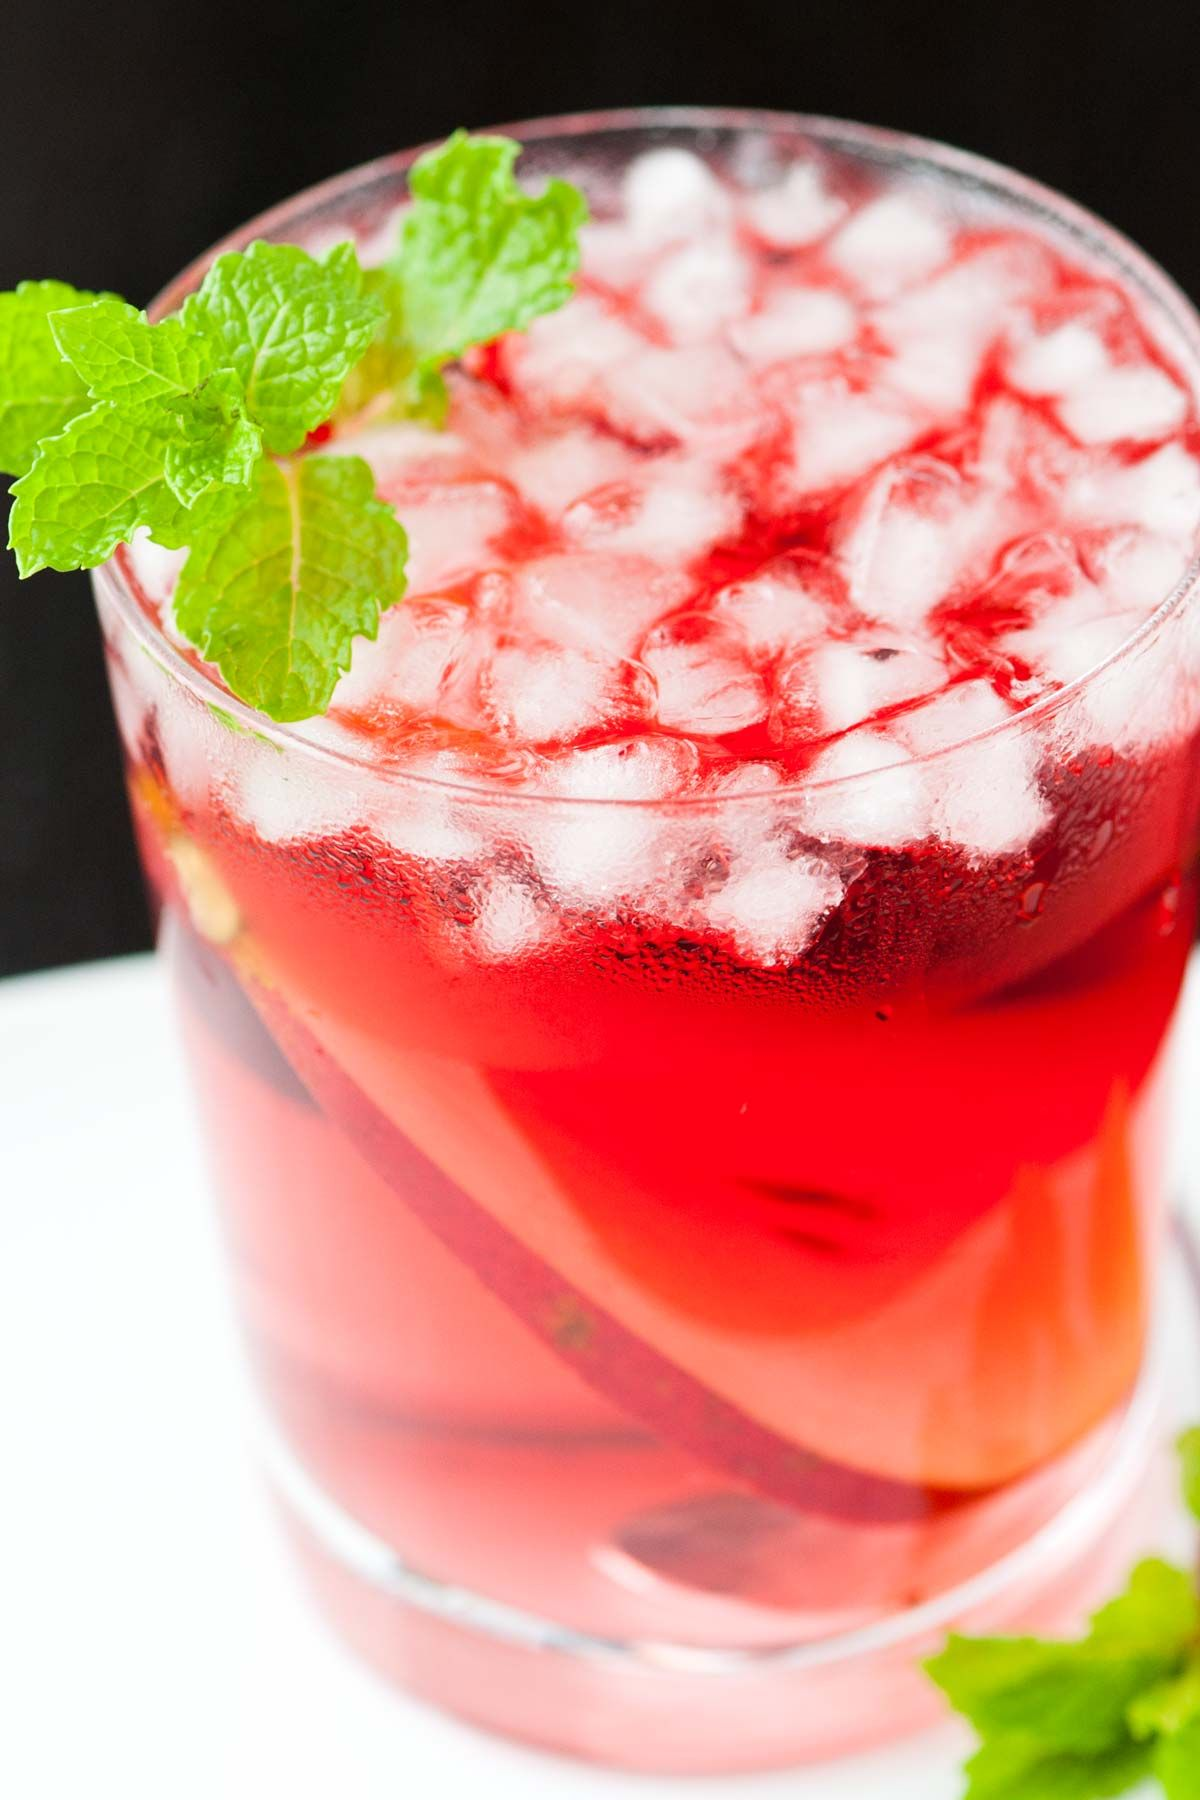 Pear Vodka And Cranberry Cocktail